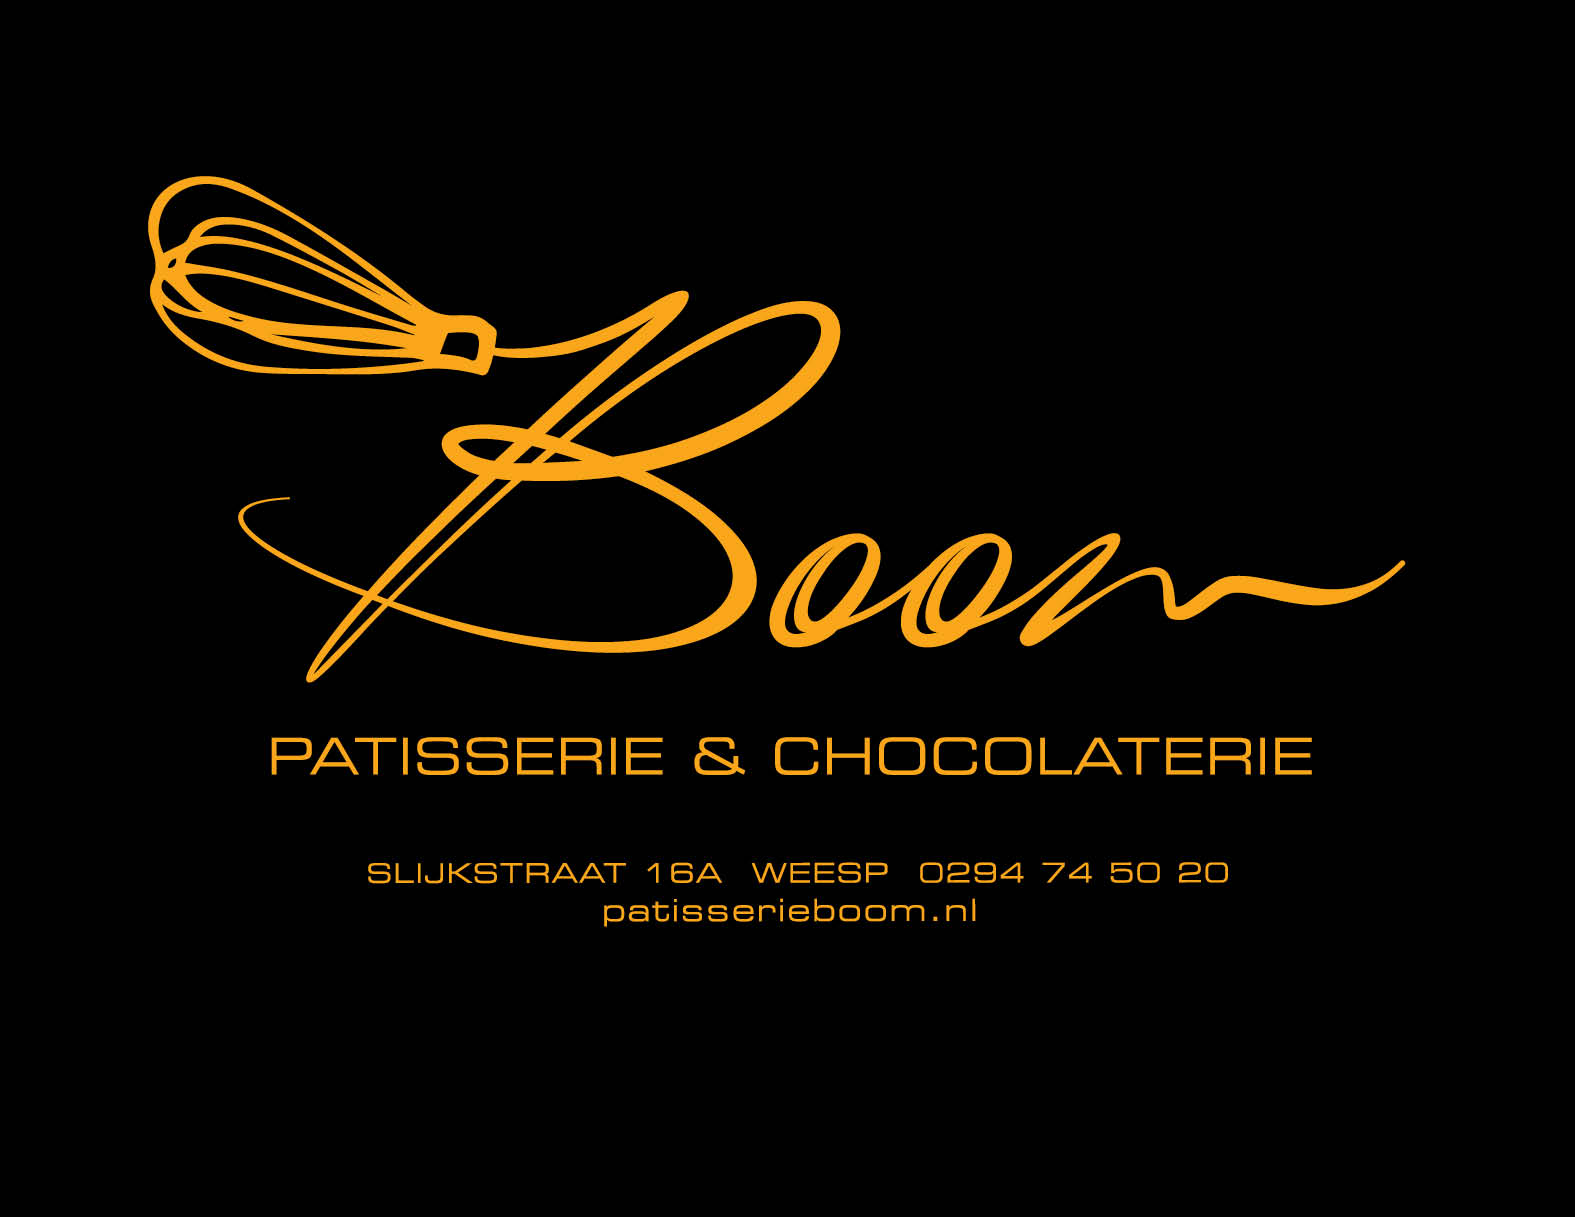 Patisserie en chocolaterie Boom